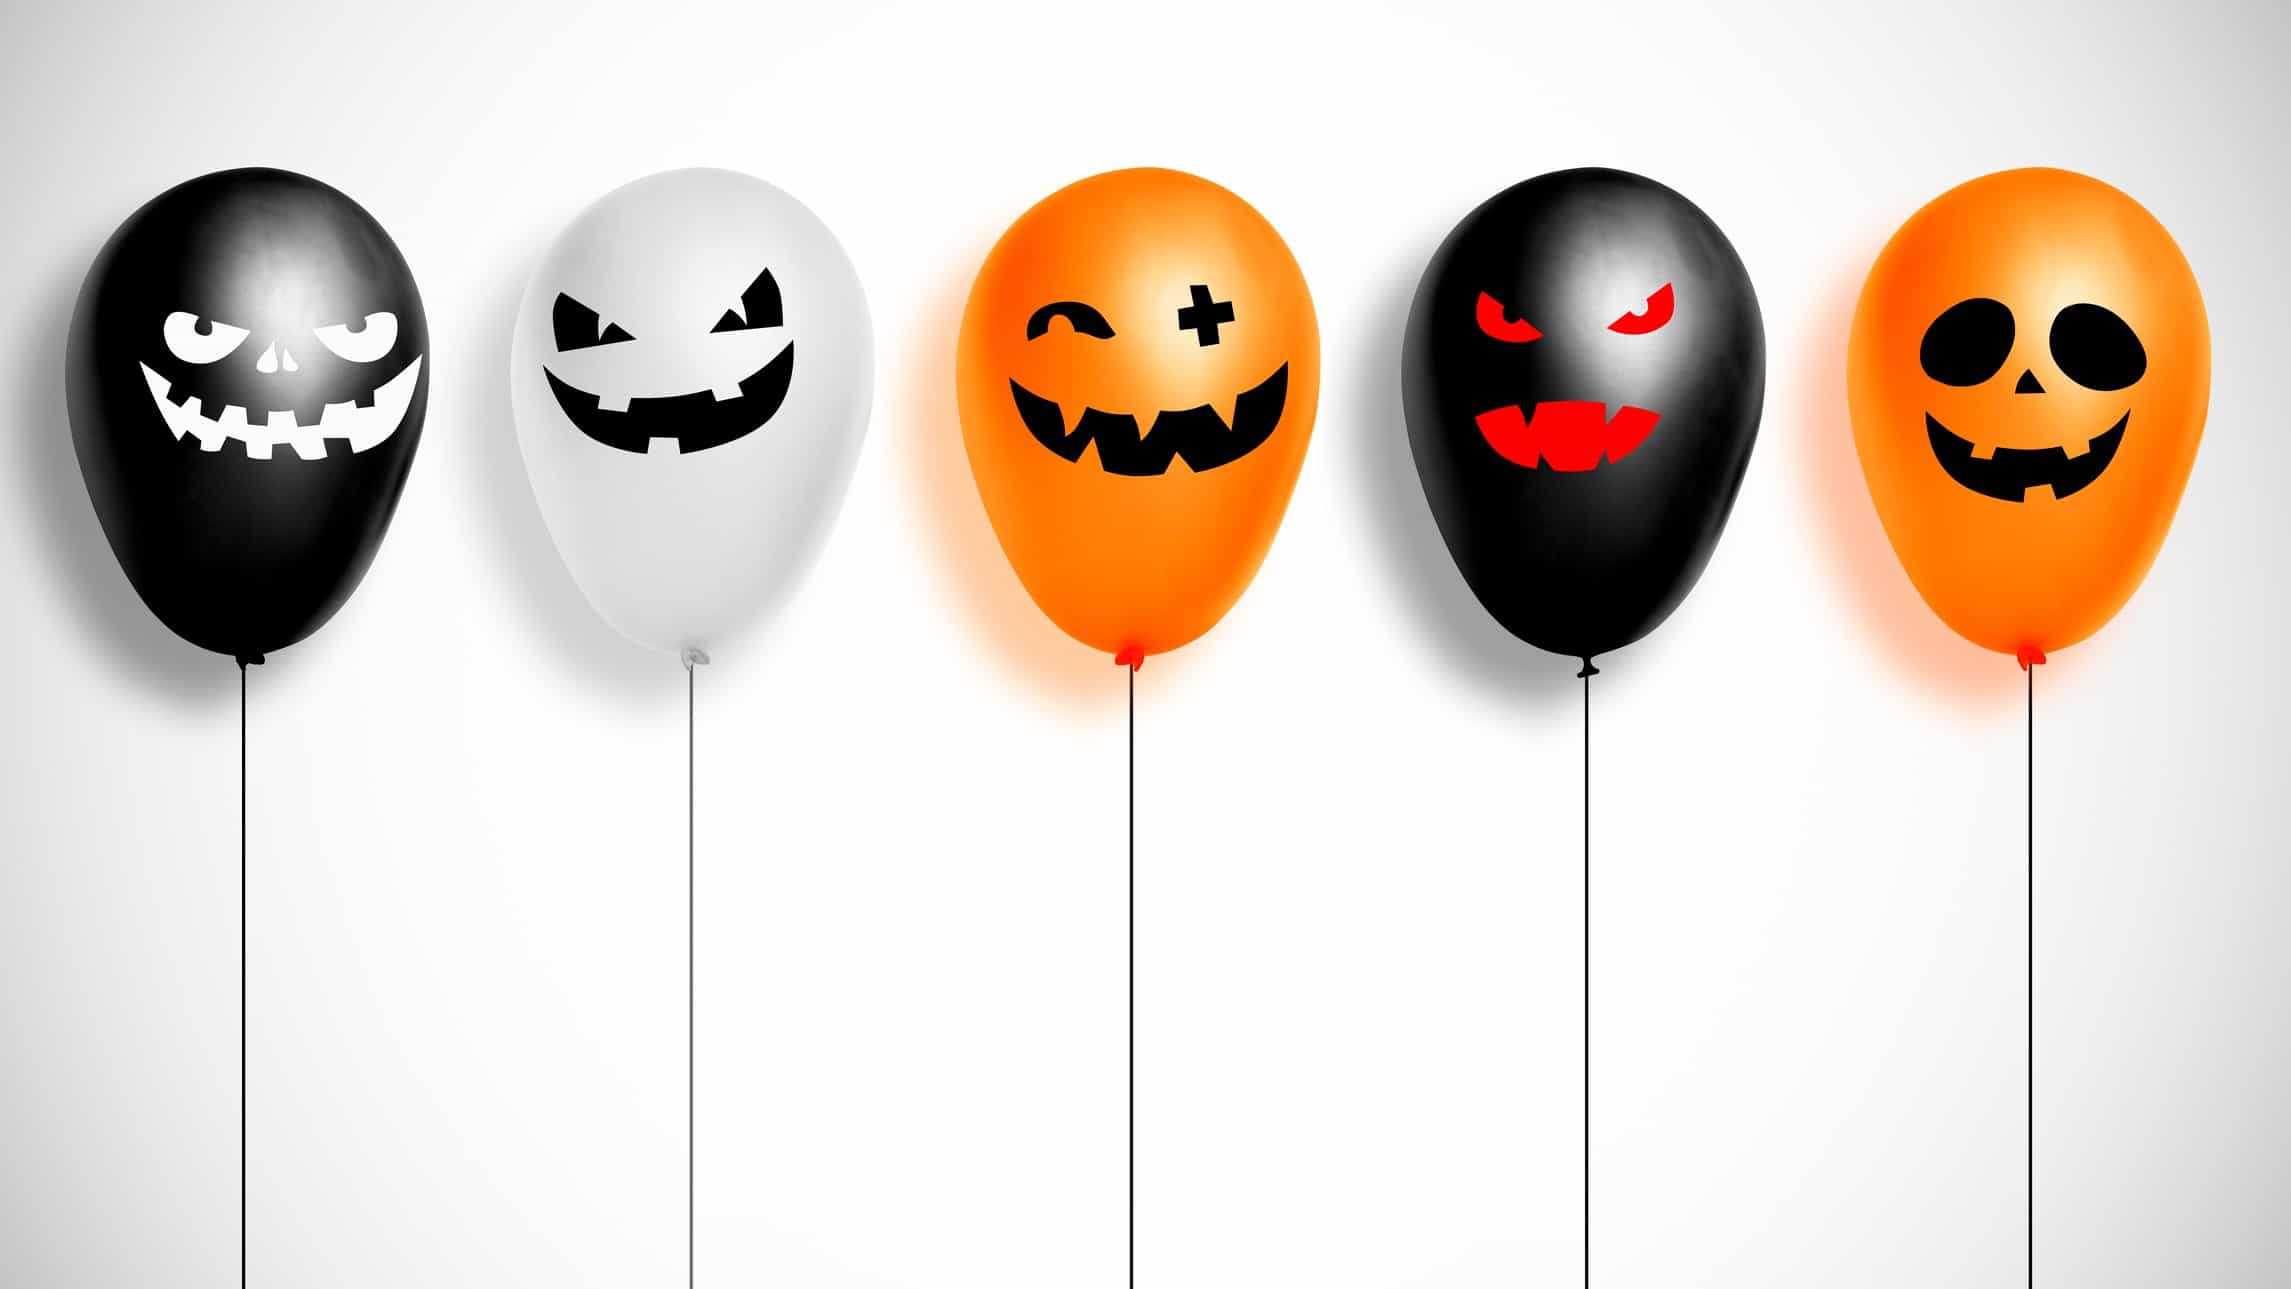 Top ASX stocks for October represented by variety of different halloween balloons